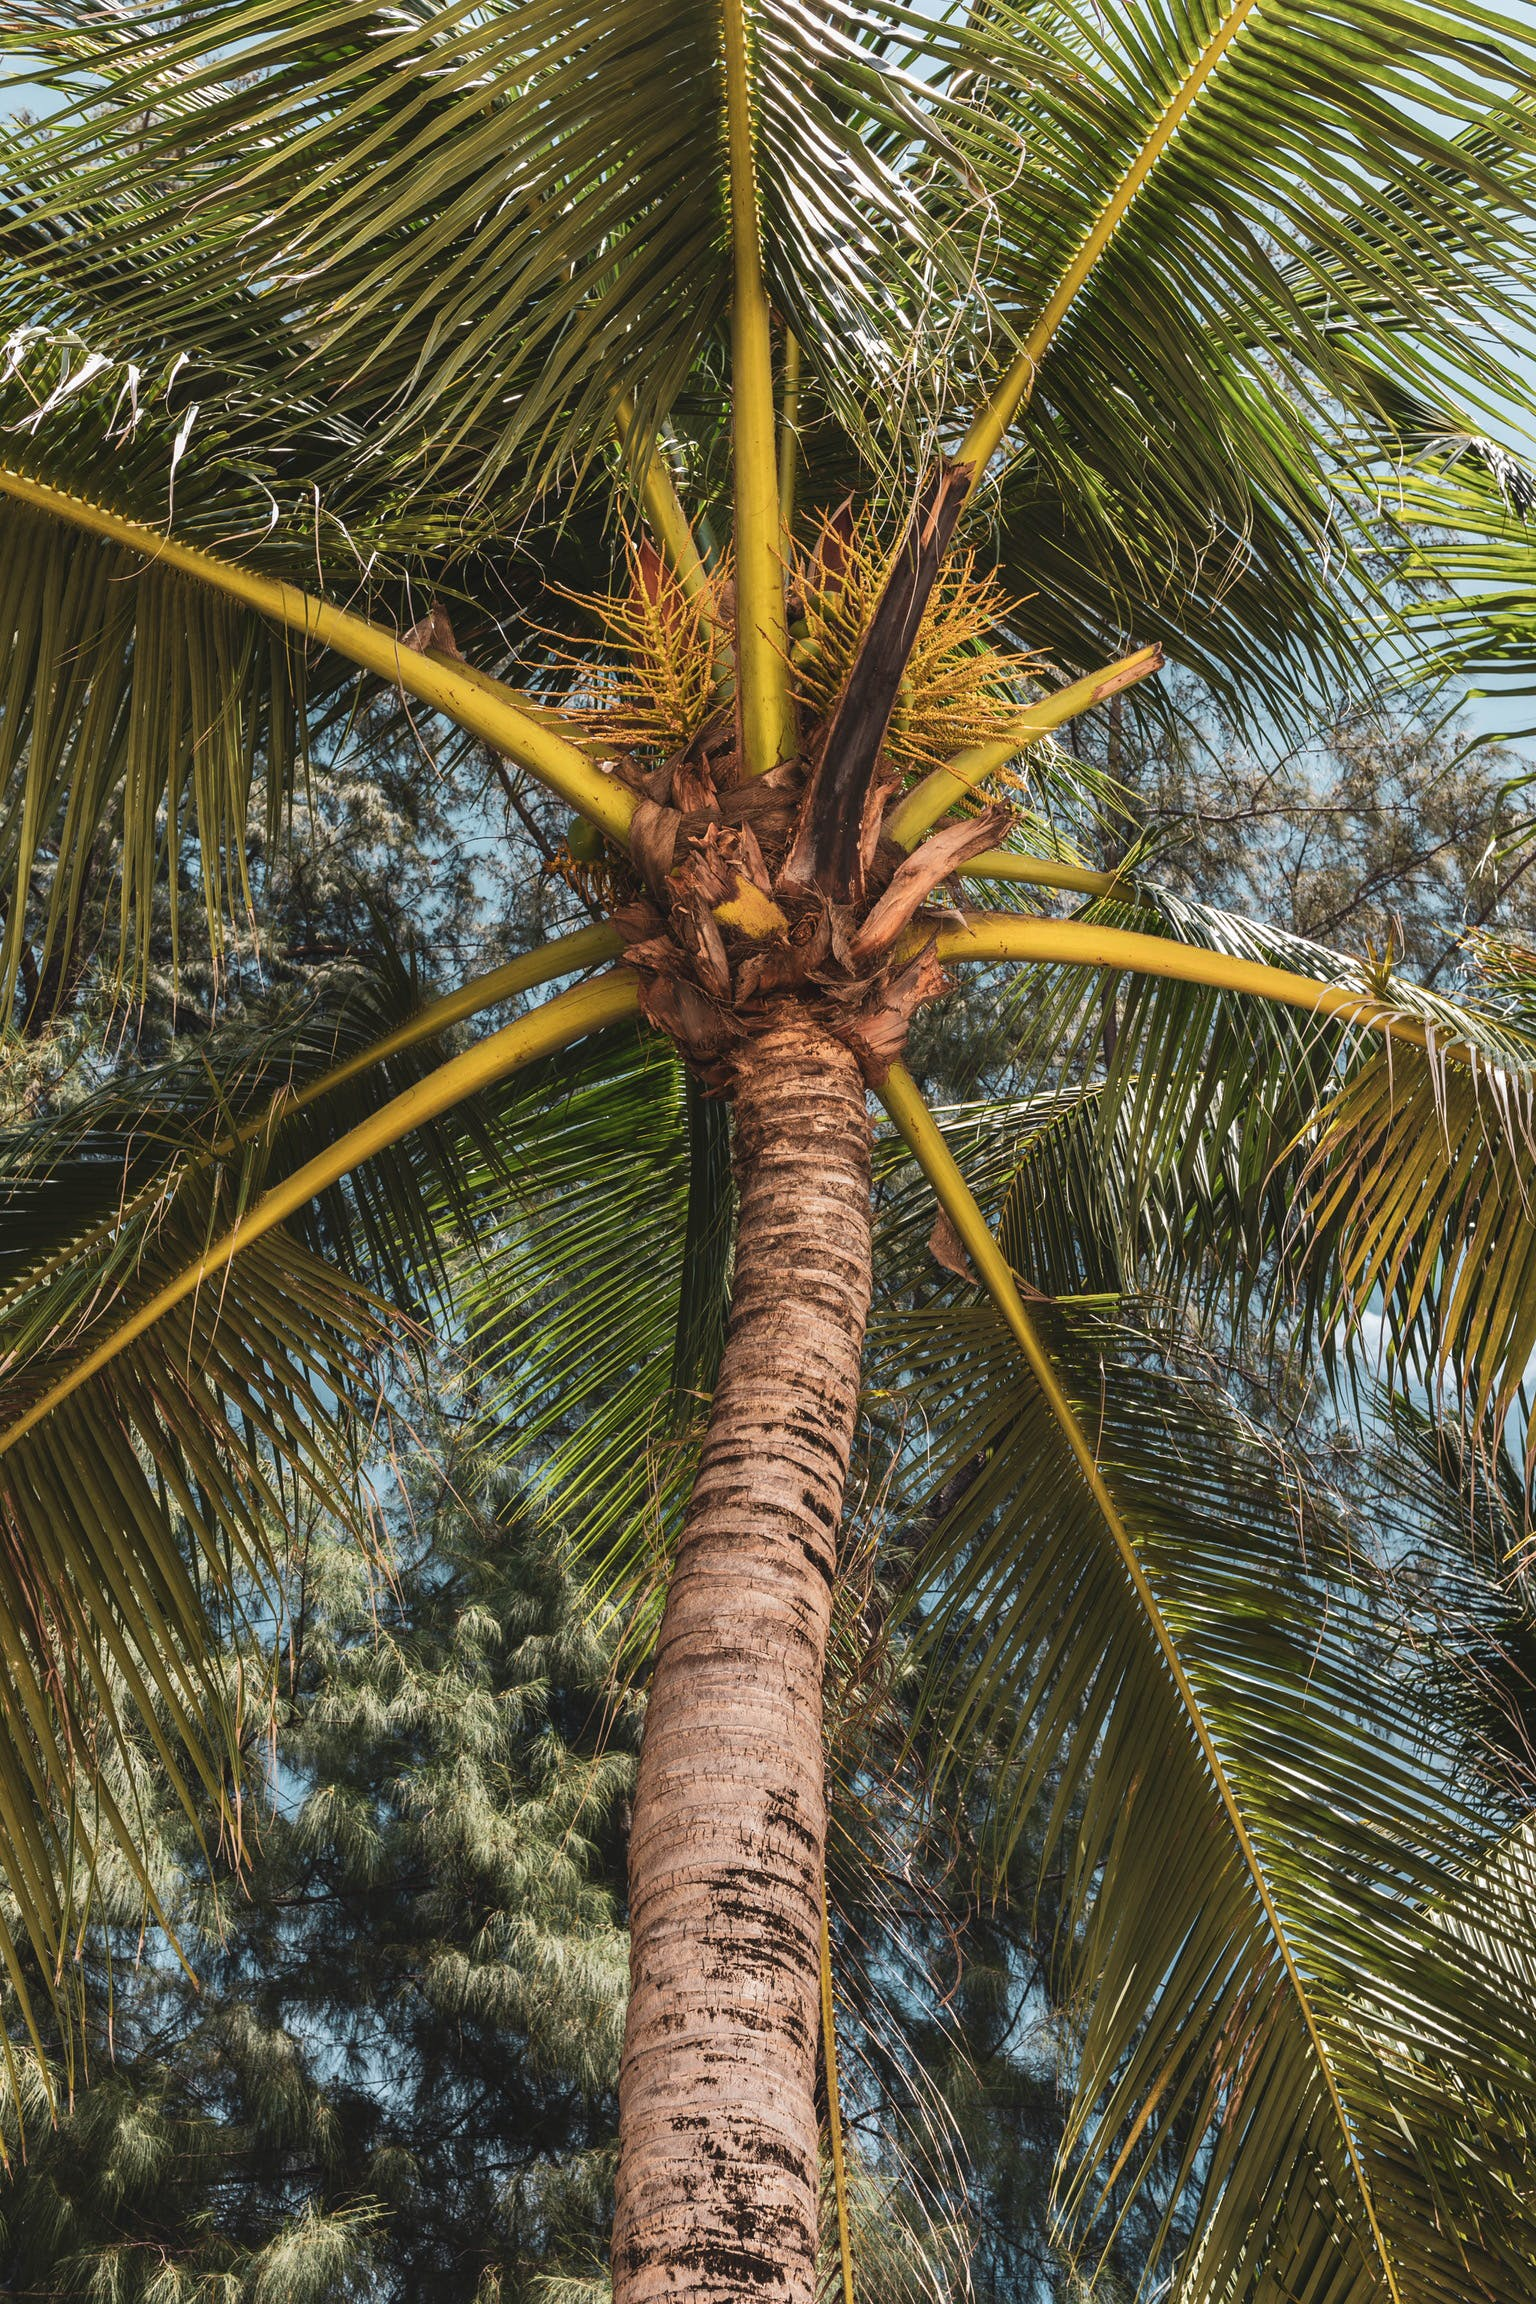 Free stock photo of abstract photo, coconut tree, natural